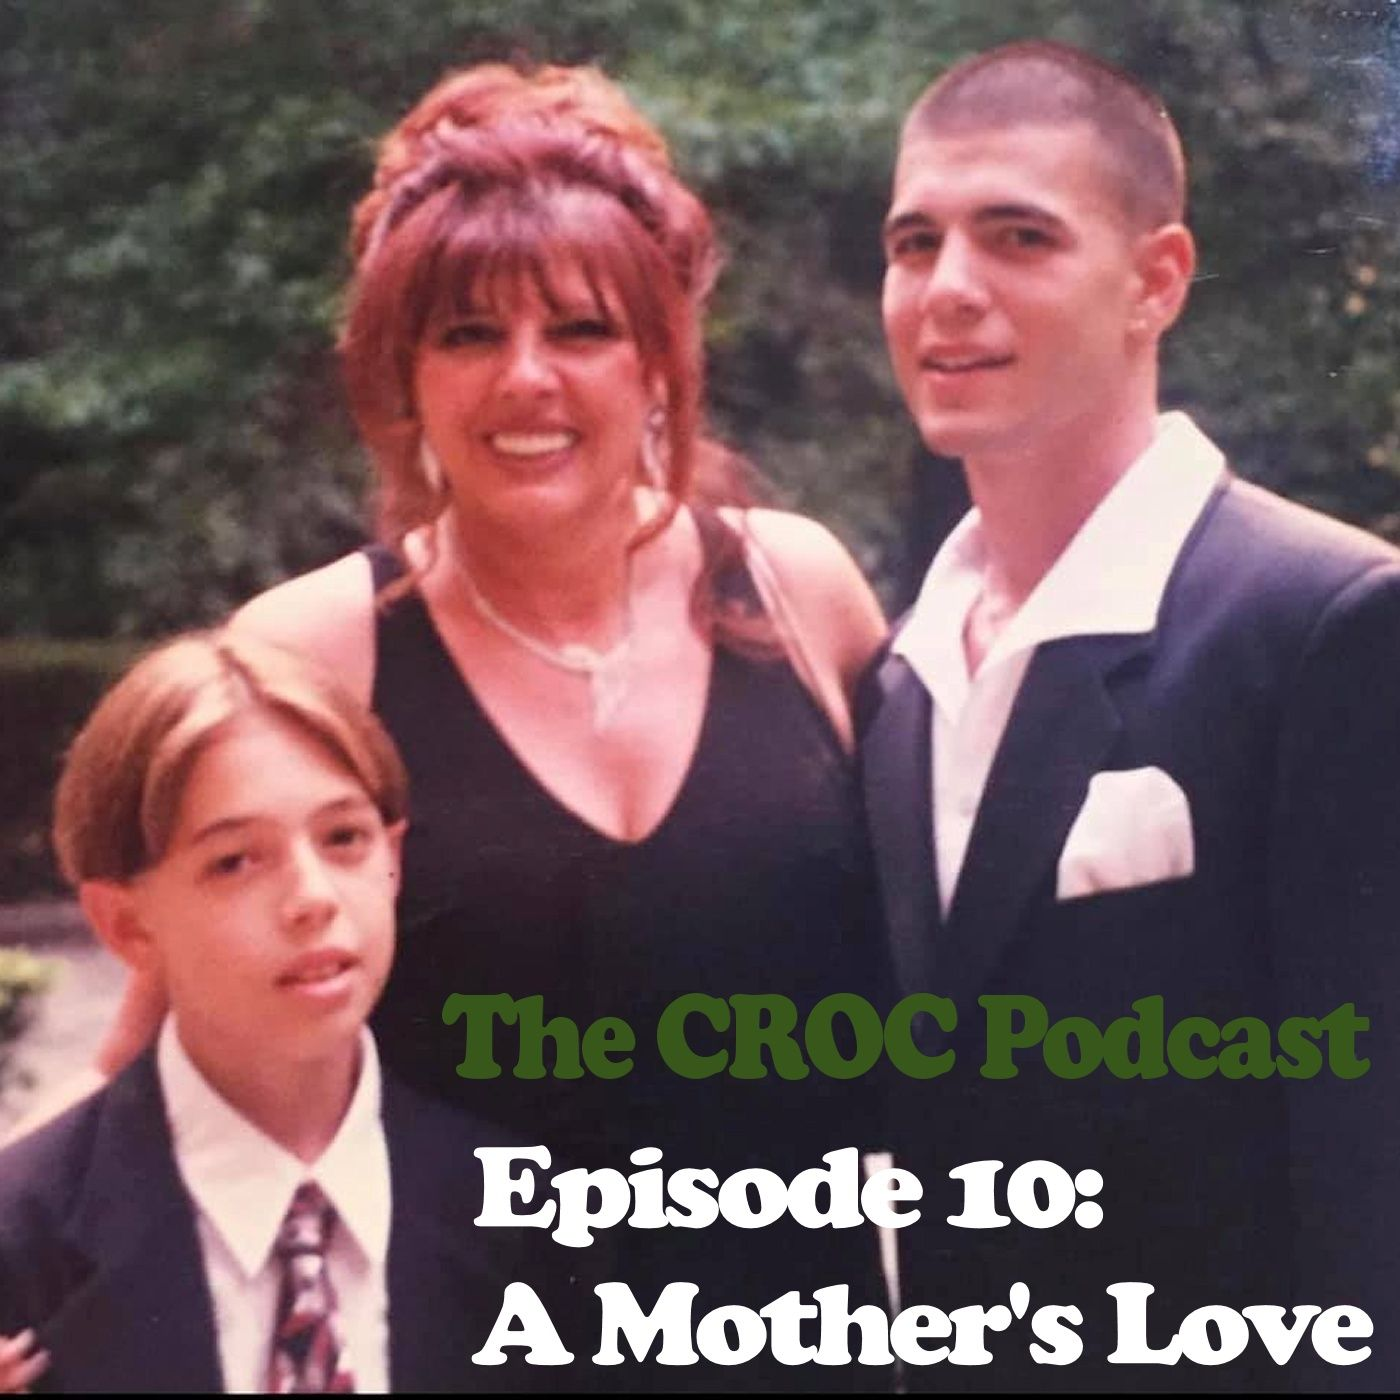 Ep10: Heroes Module 1 - A Mother's Love